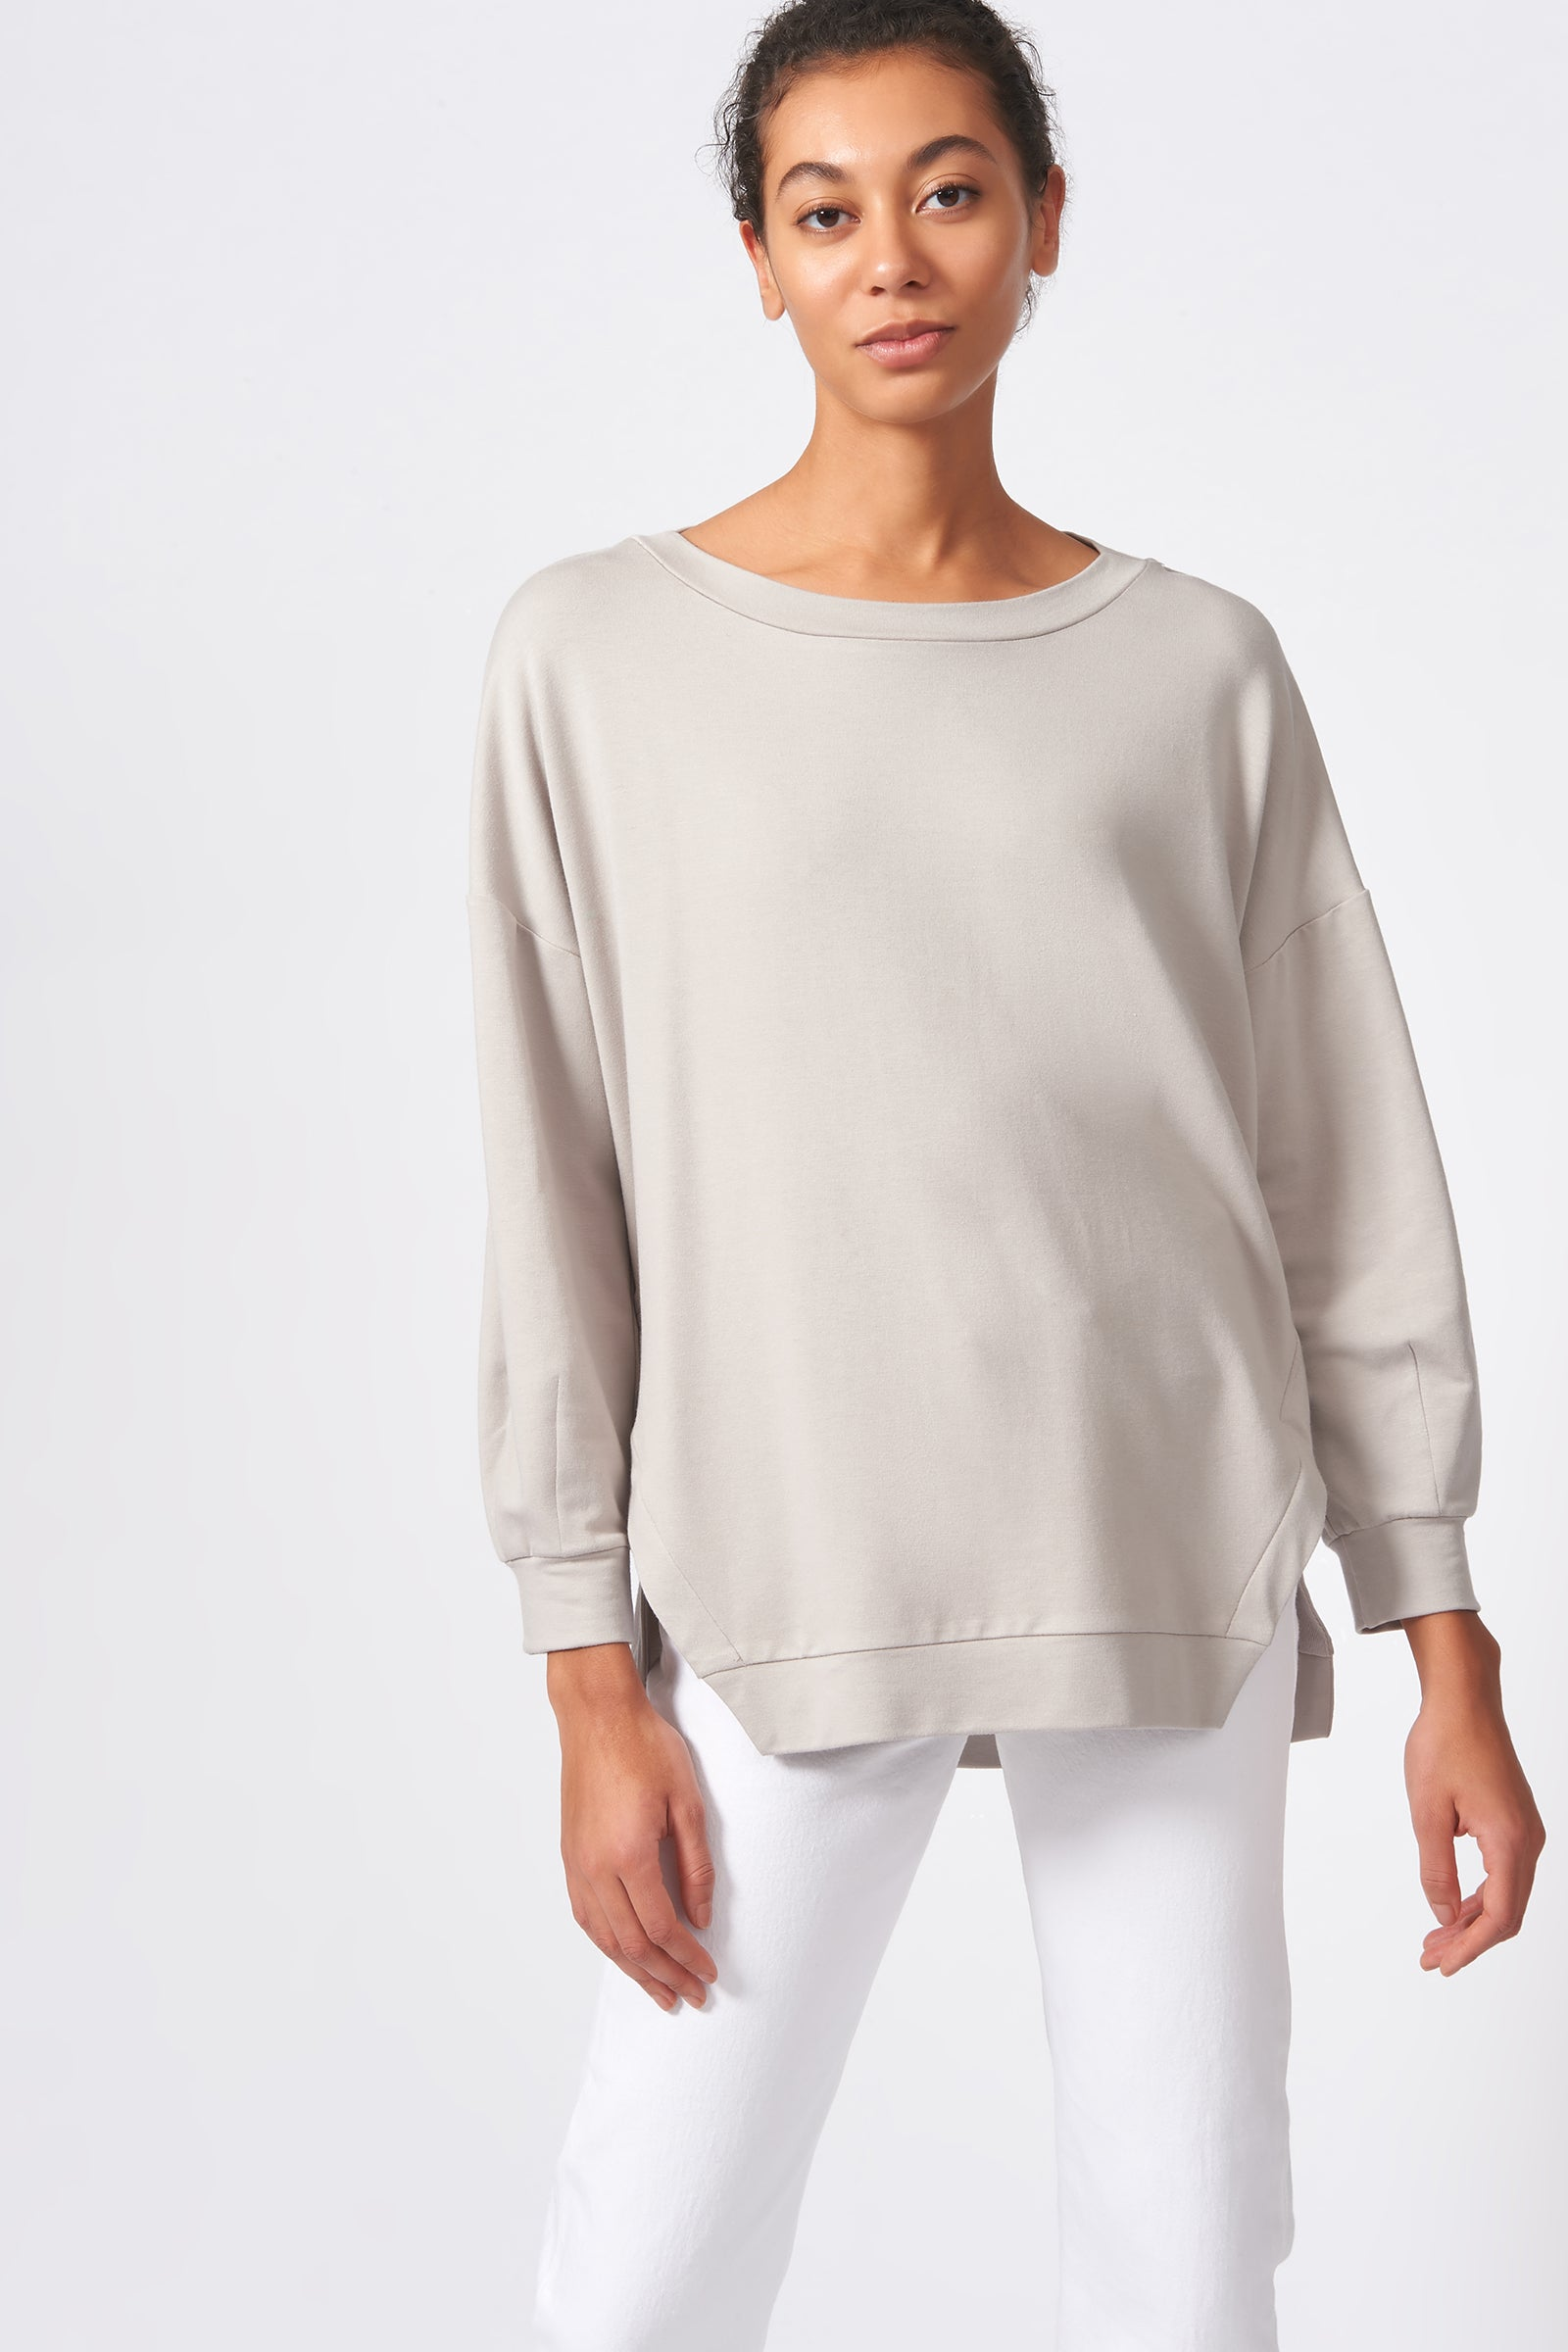 Kal Rieman Side Slit Sweatshirt in Khaki on Model Front View